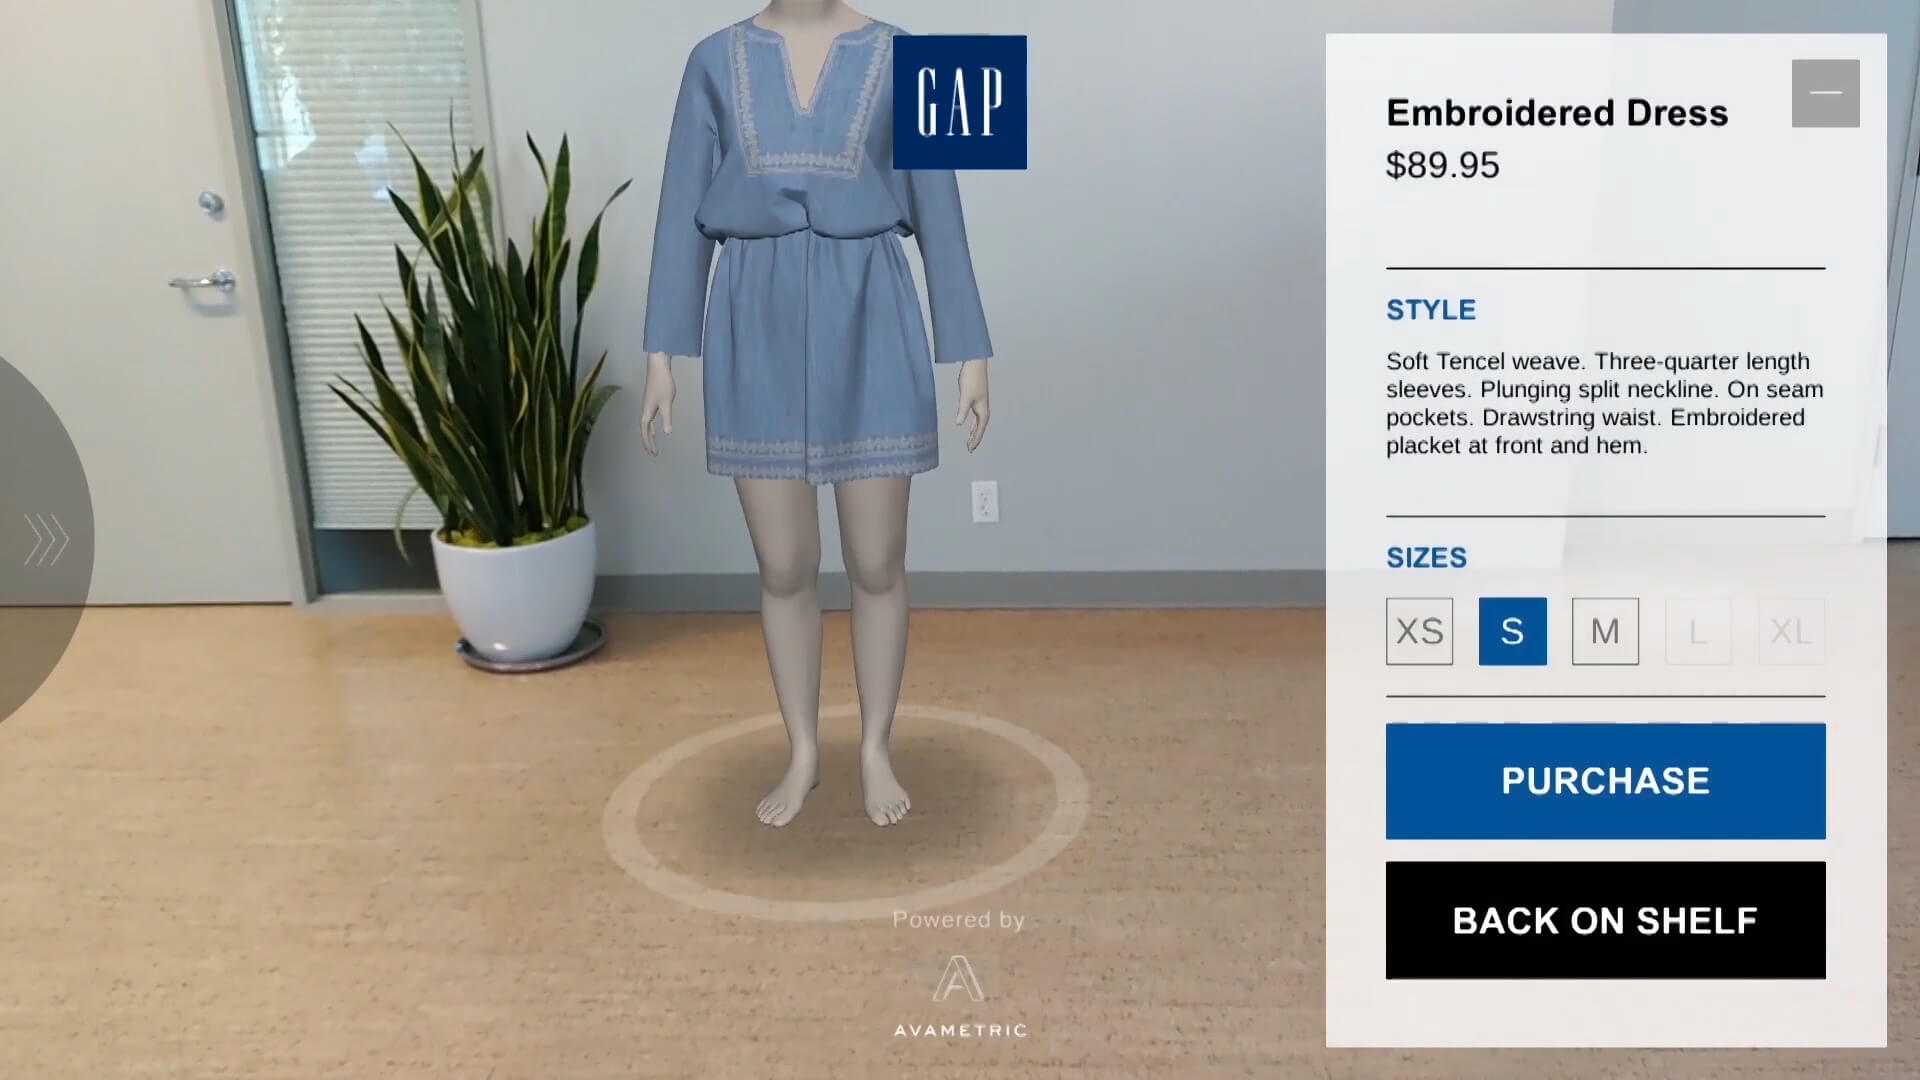 RETAIL INDUSTRY, GET READY: HOW VR, AR, AND MR APPS WILL CHANGE YOUR BUSINESS